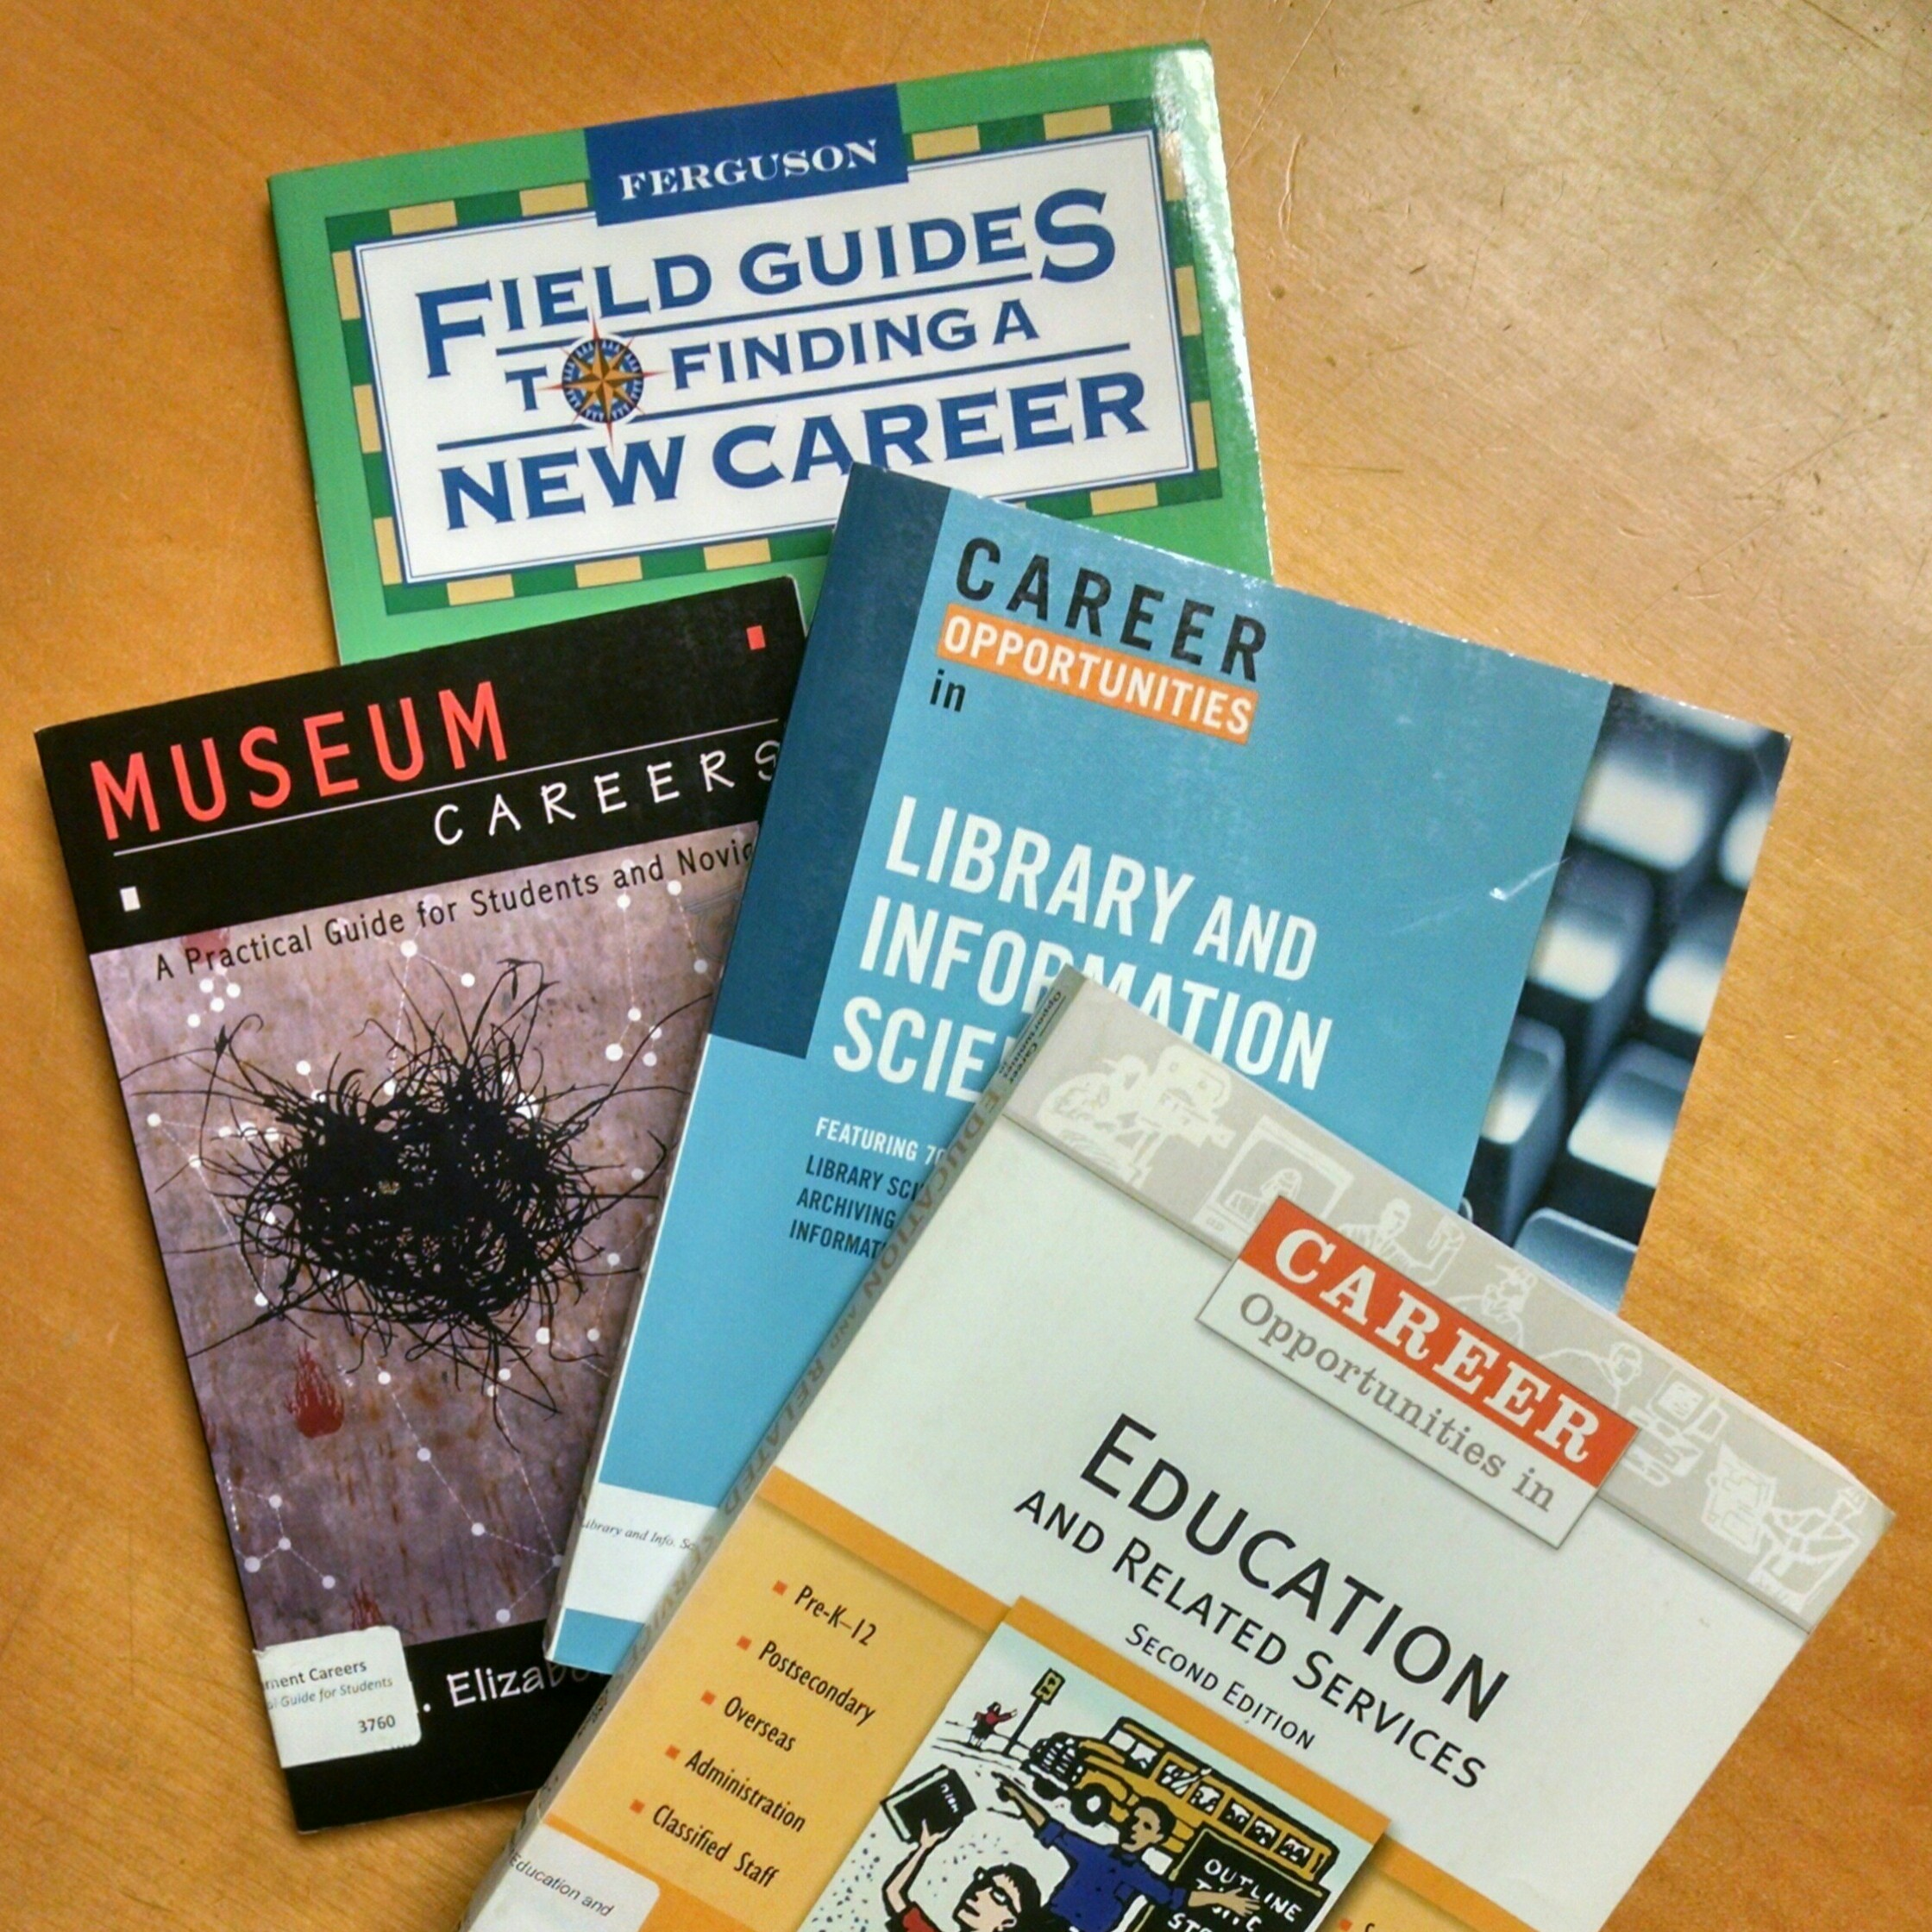 ces library information management and archive careers books about library careers